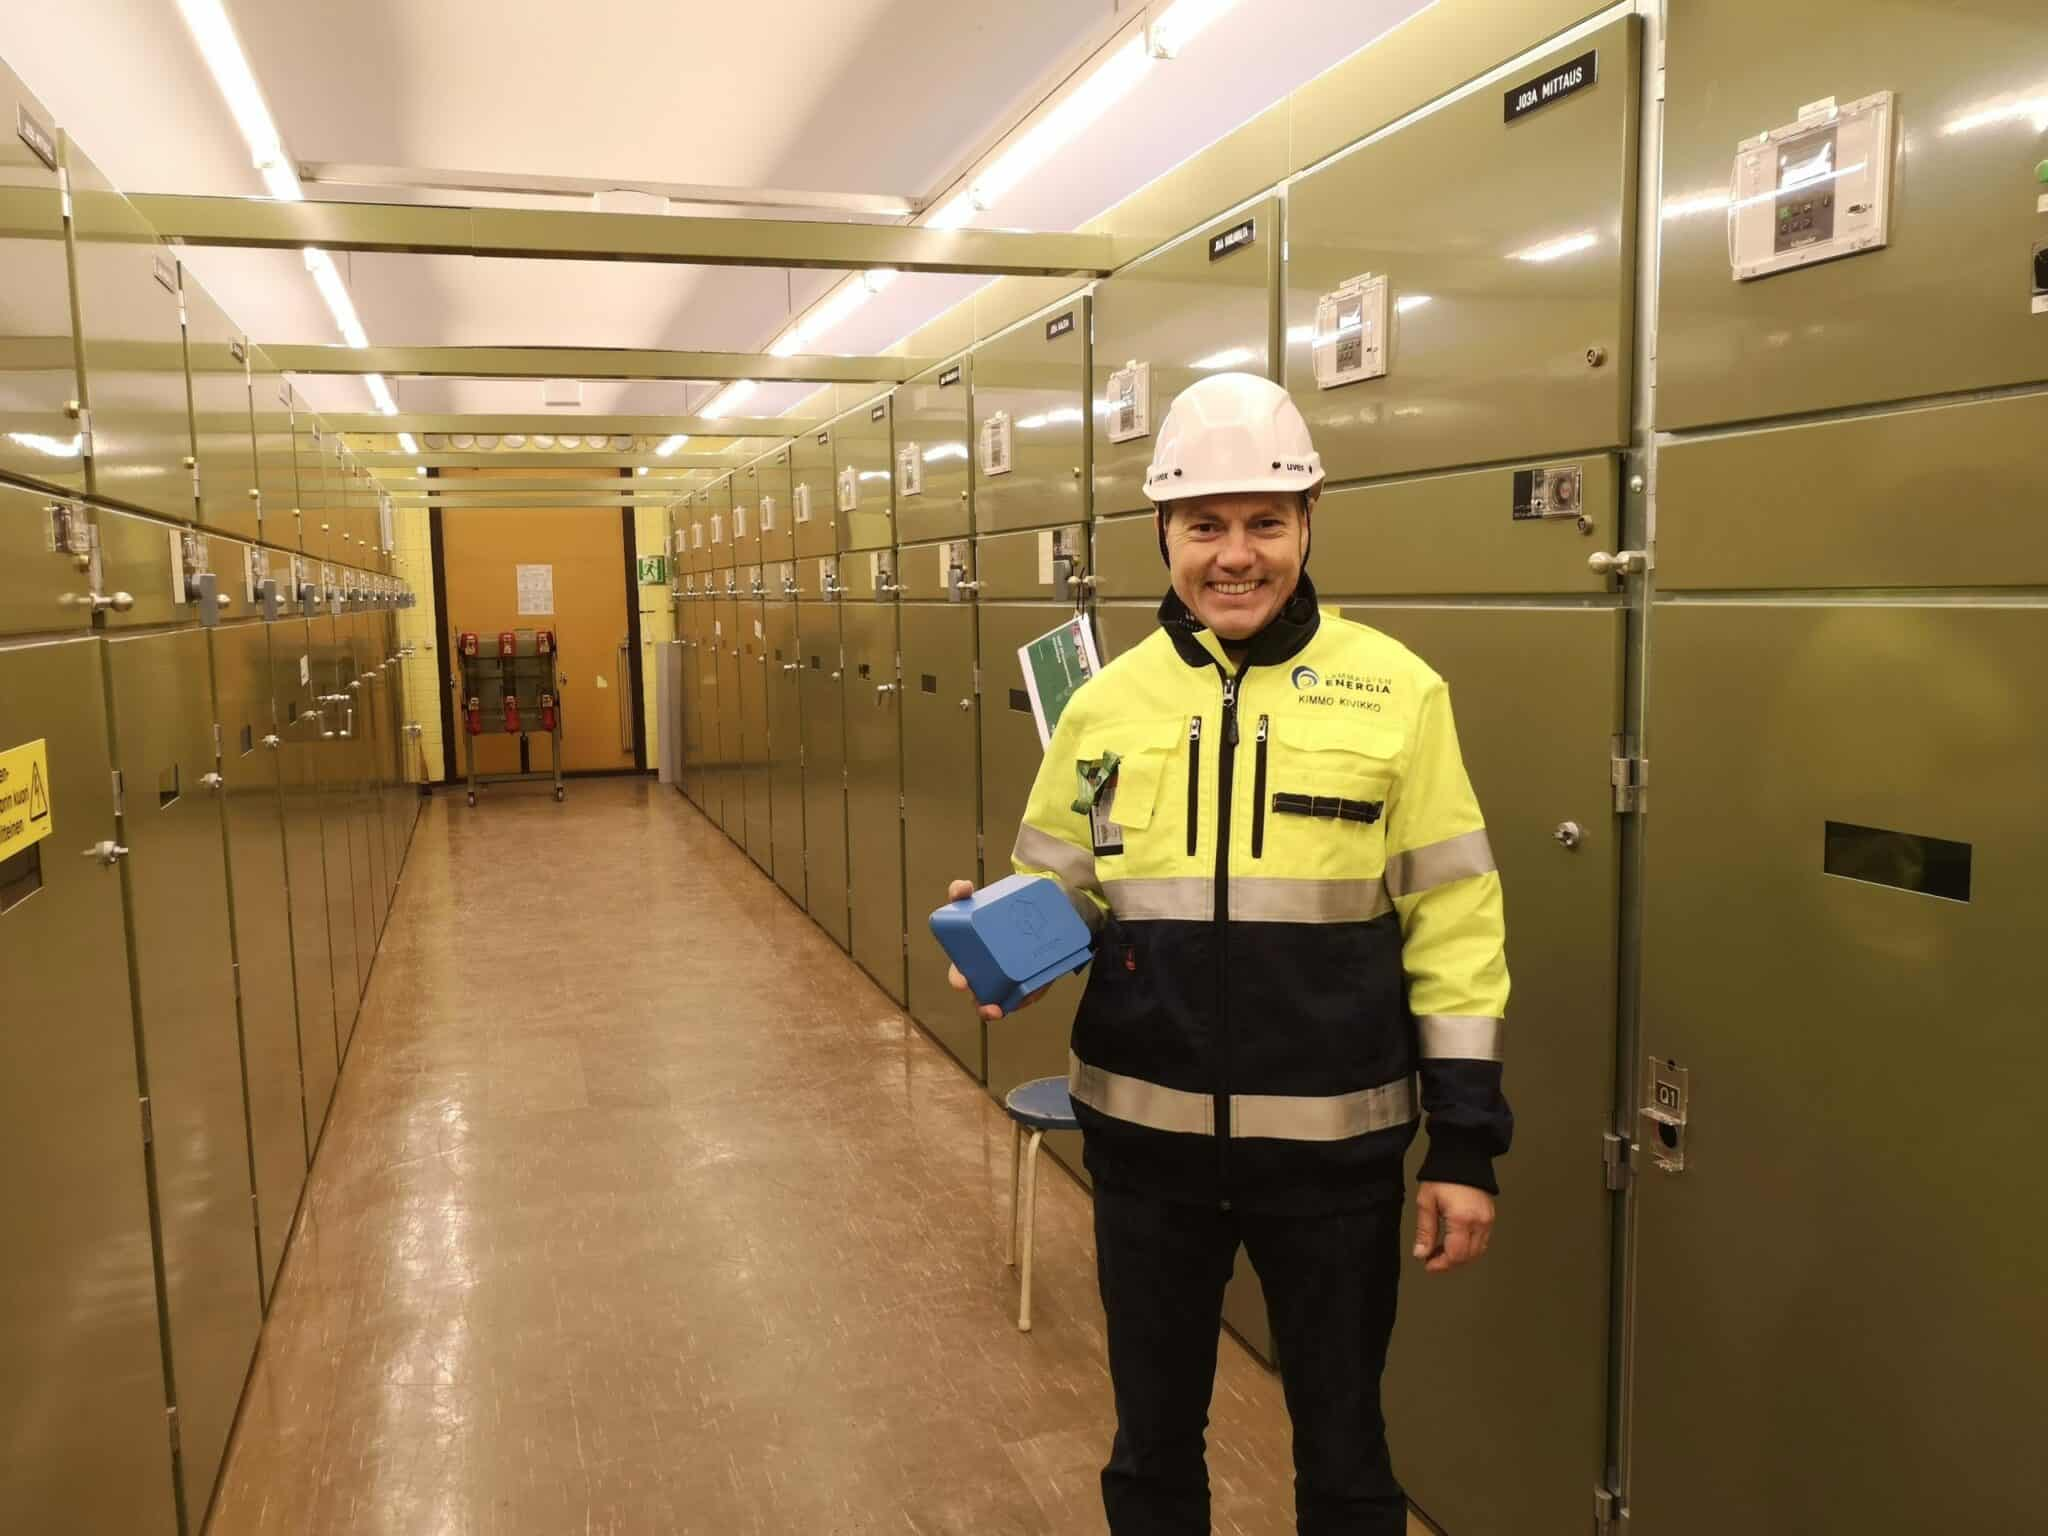 Lammaisten Energia gets 100% visibility to their grid with the help of Safegrid